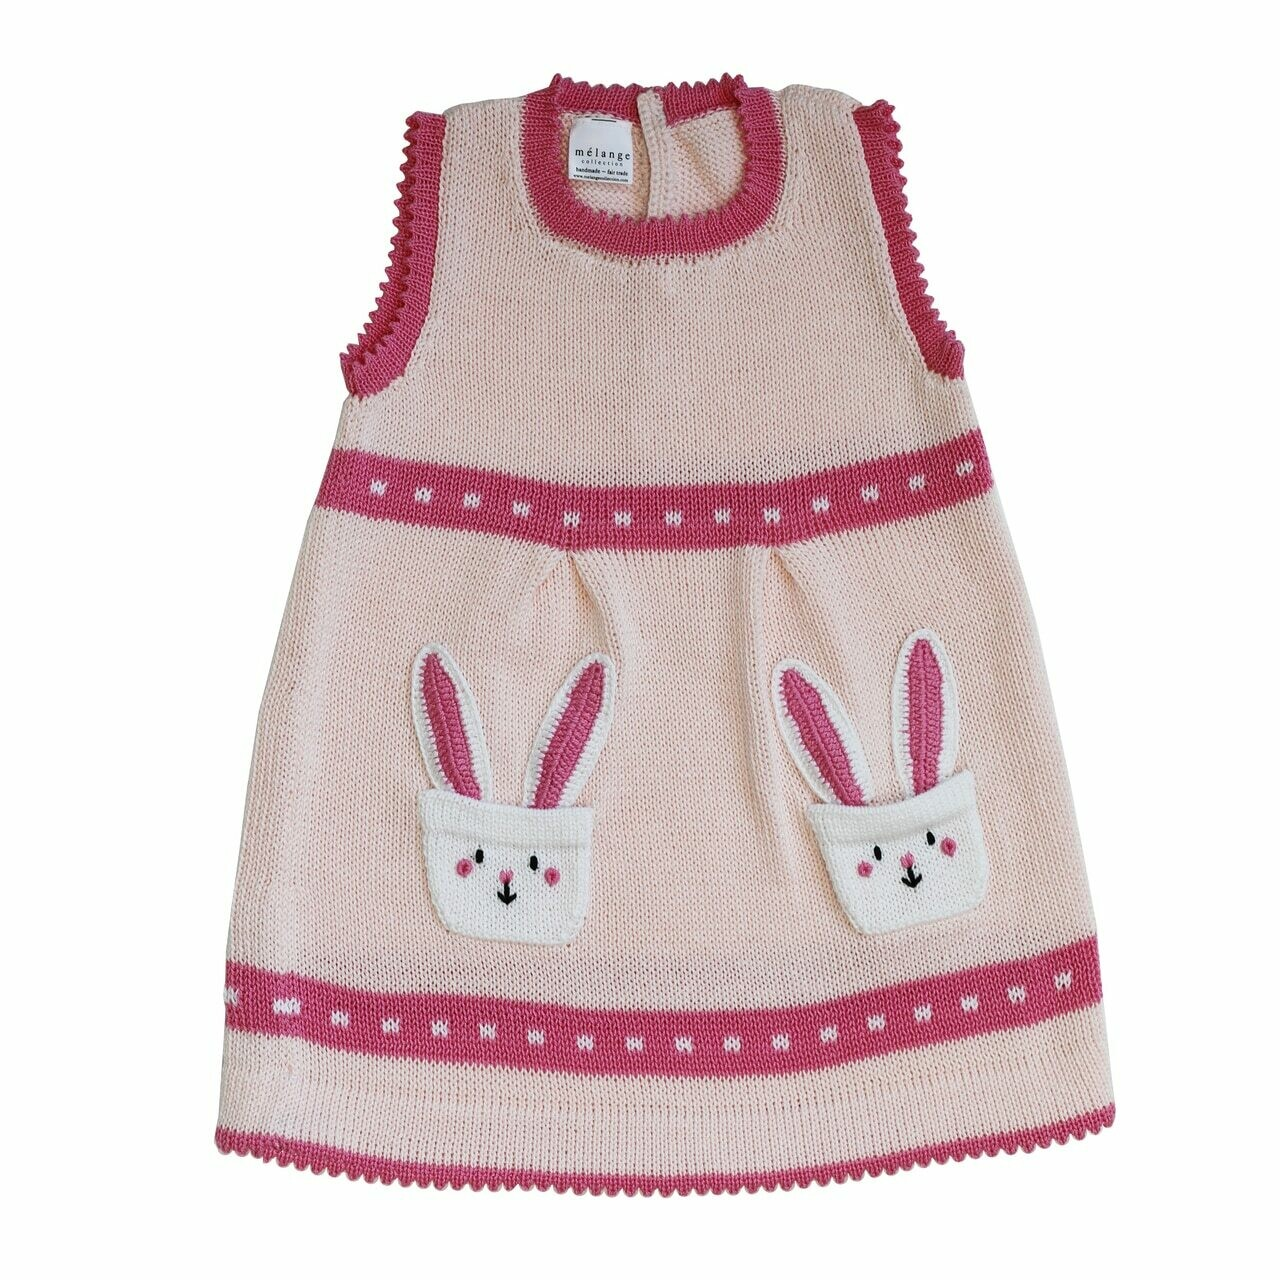 Bunny Pocket Dress, 24mon